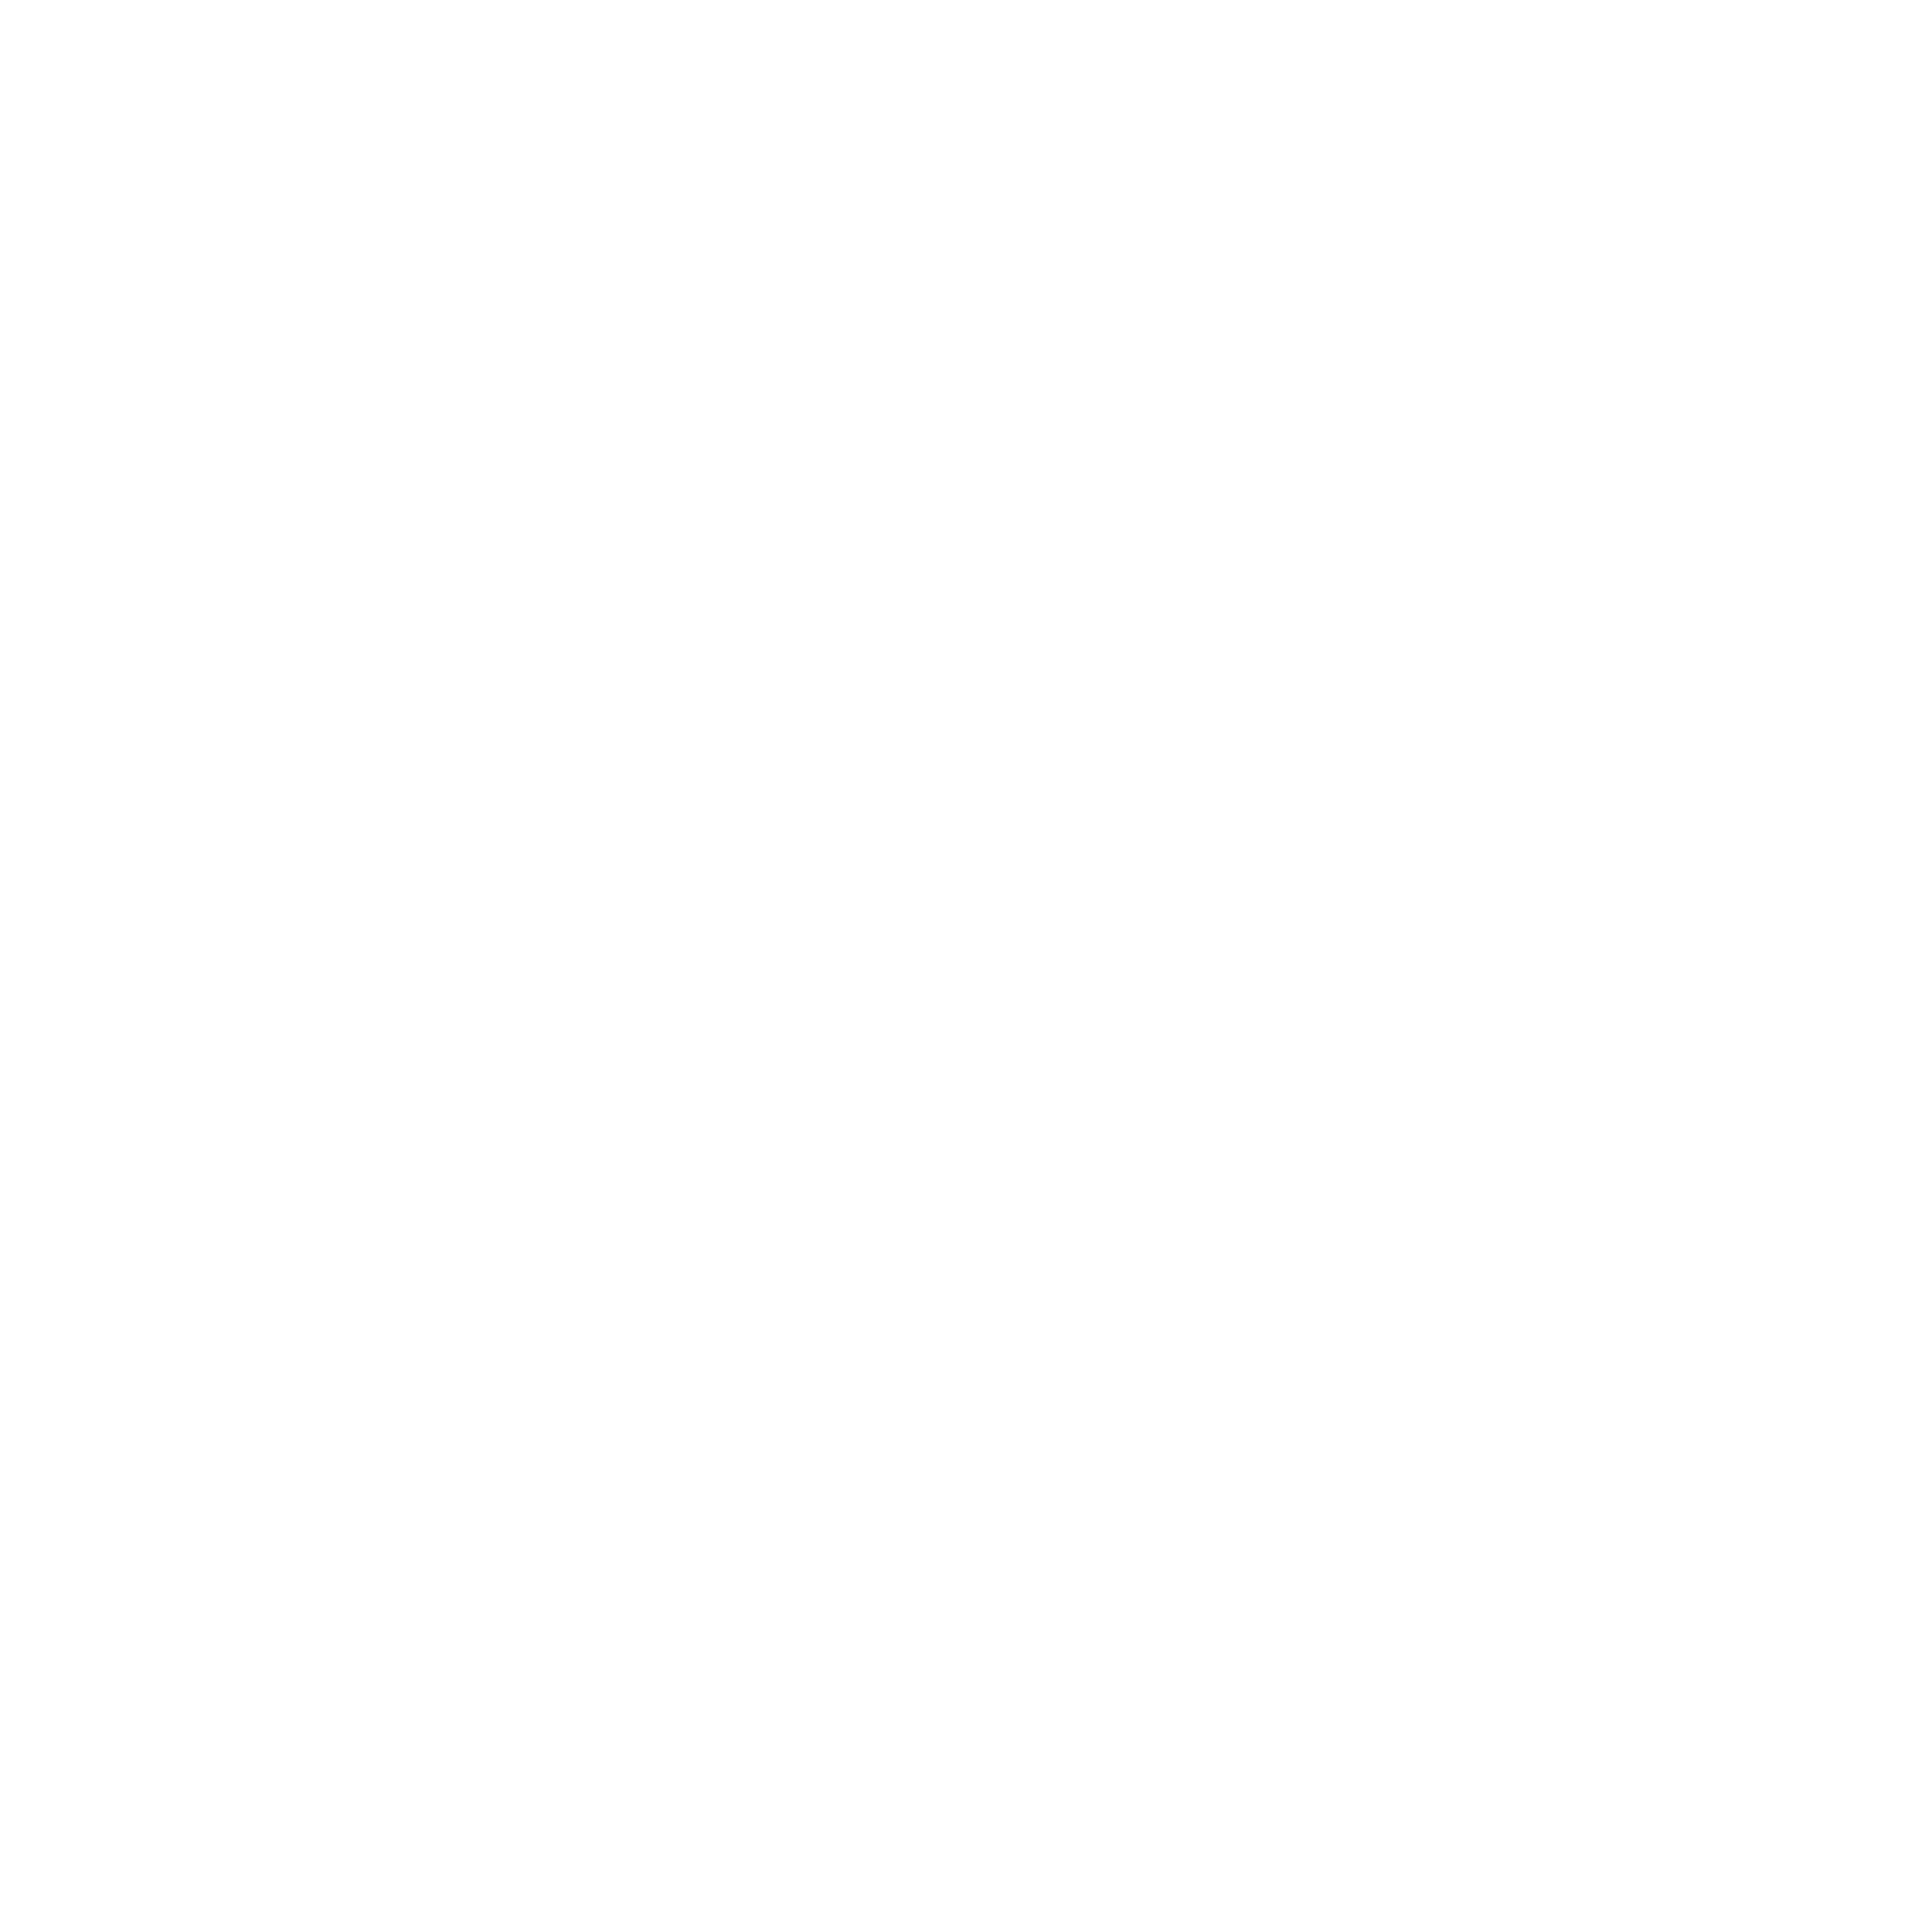 inverclyde-council-logo